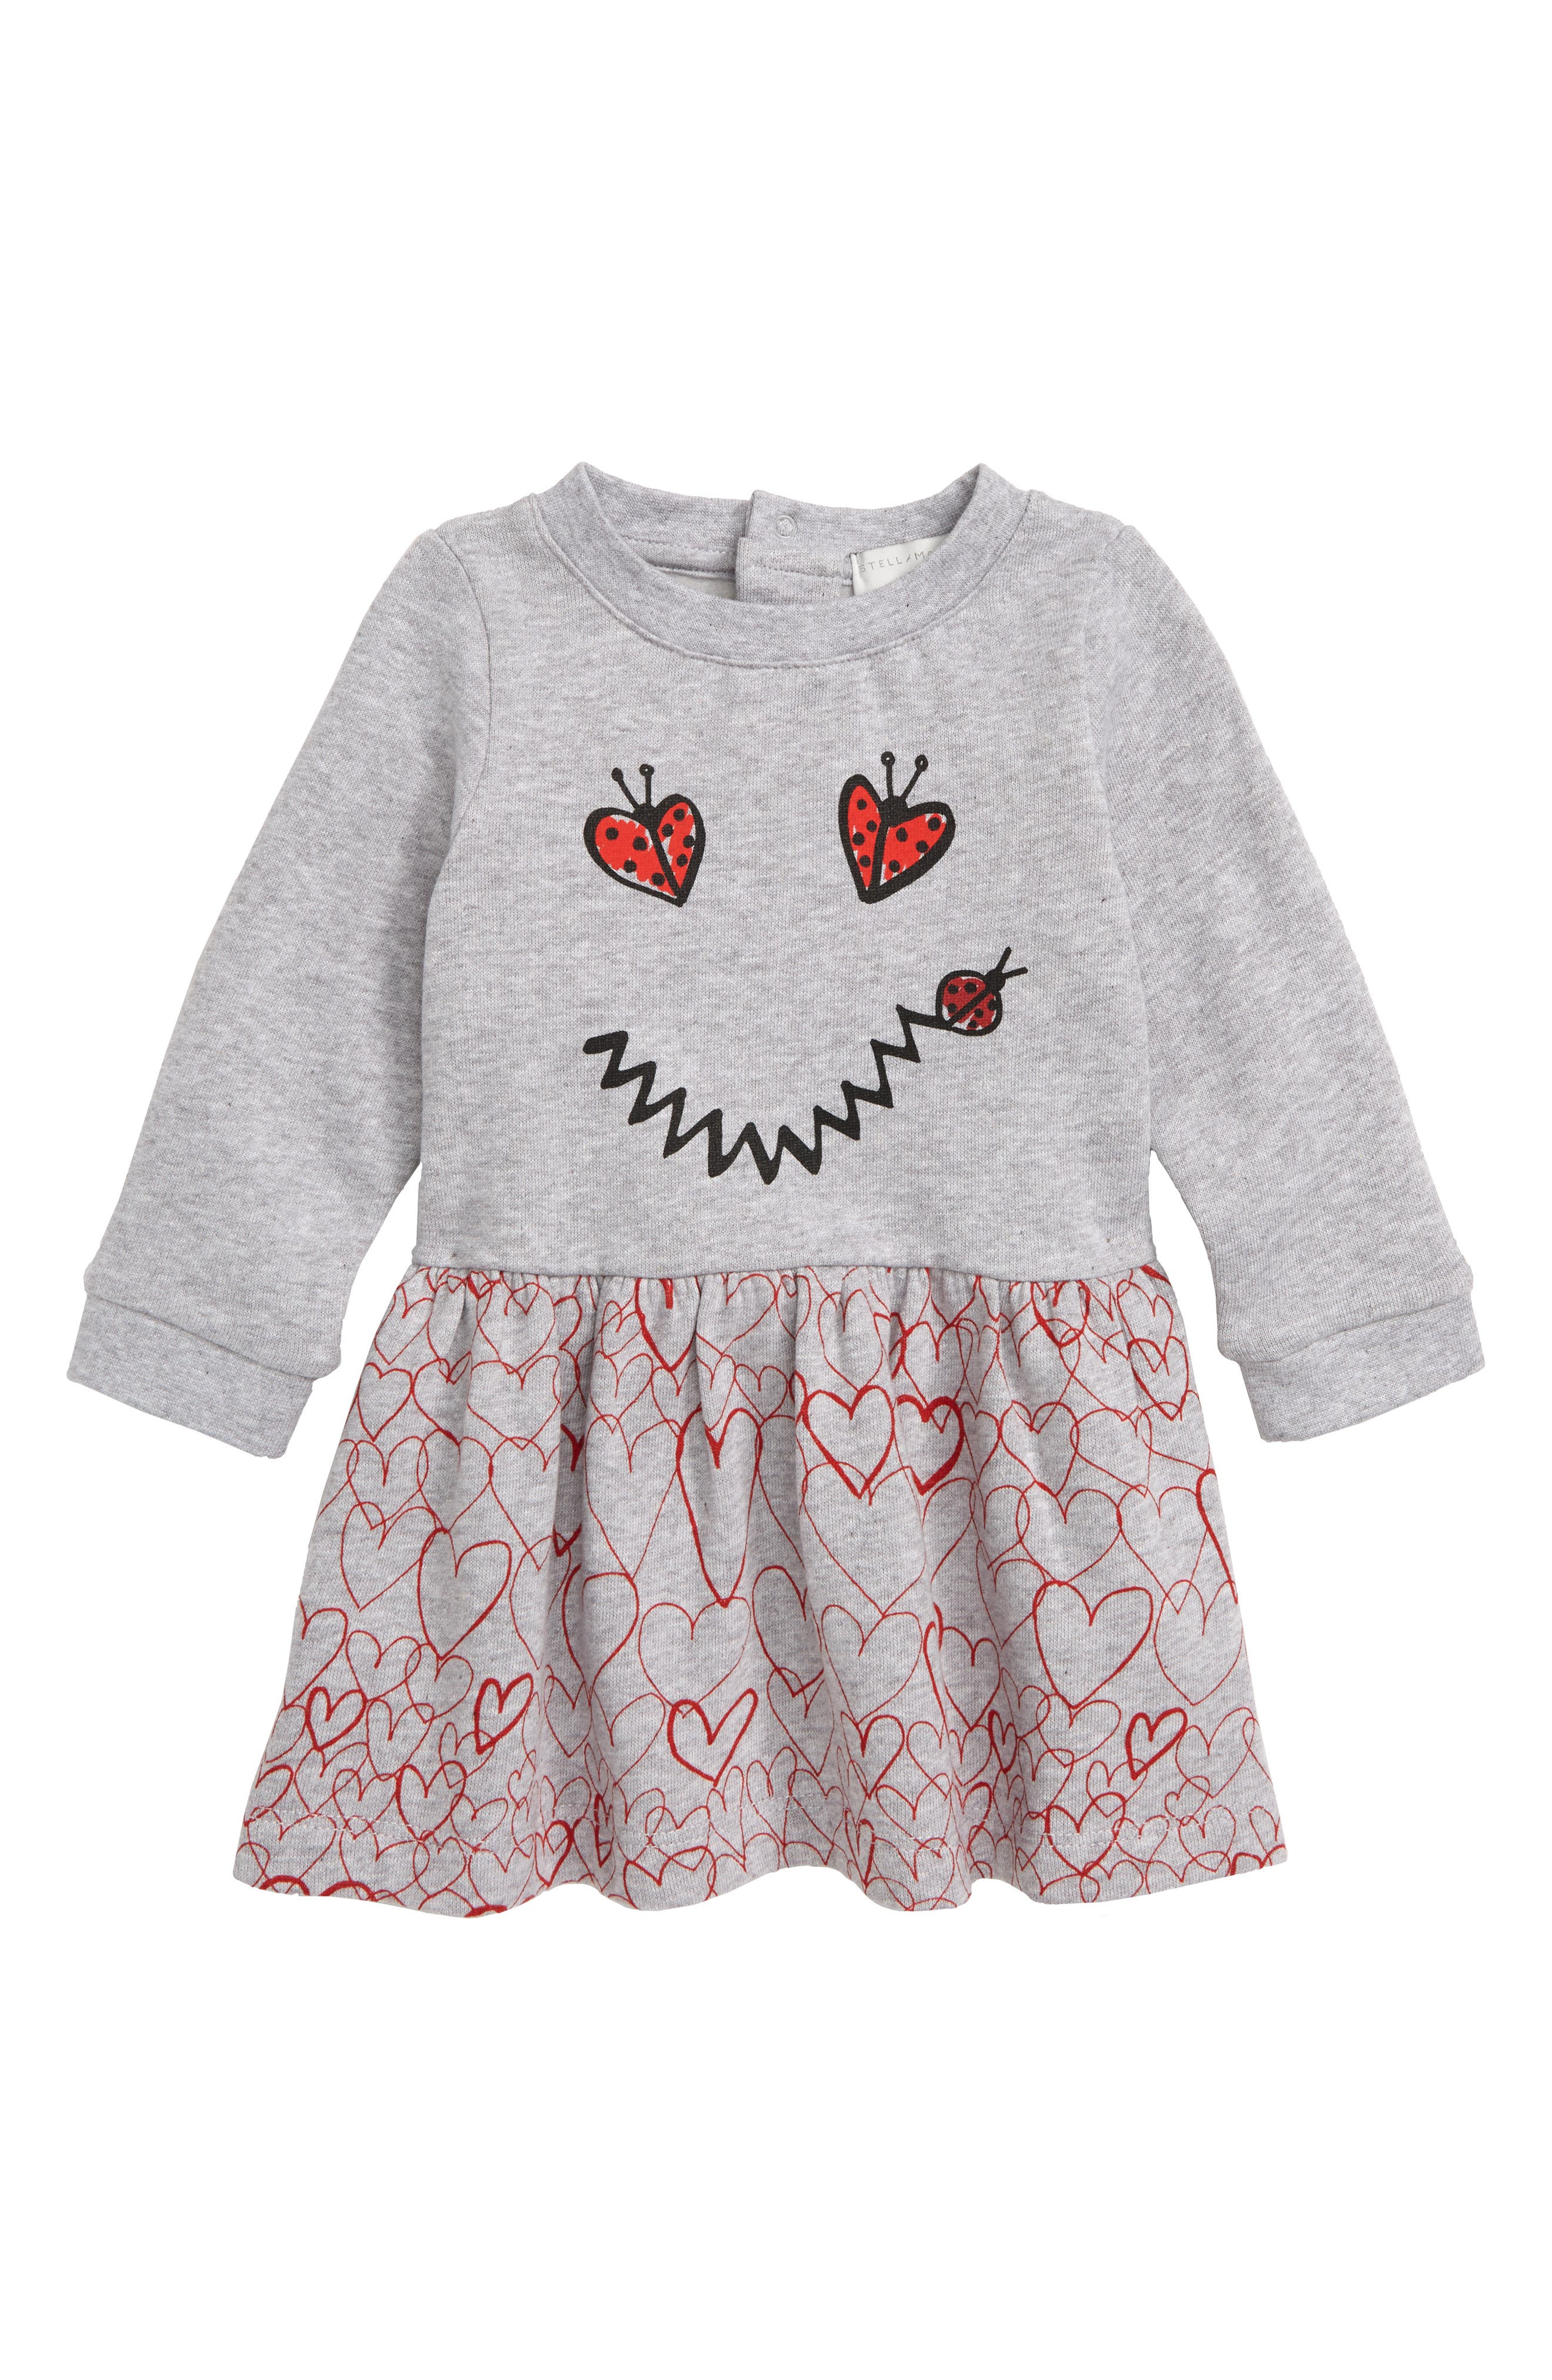 Smiley Heart Dress,                             Main thumbnail 1, color,                             020